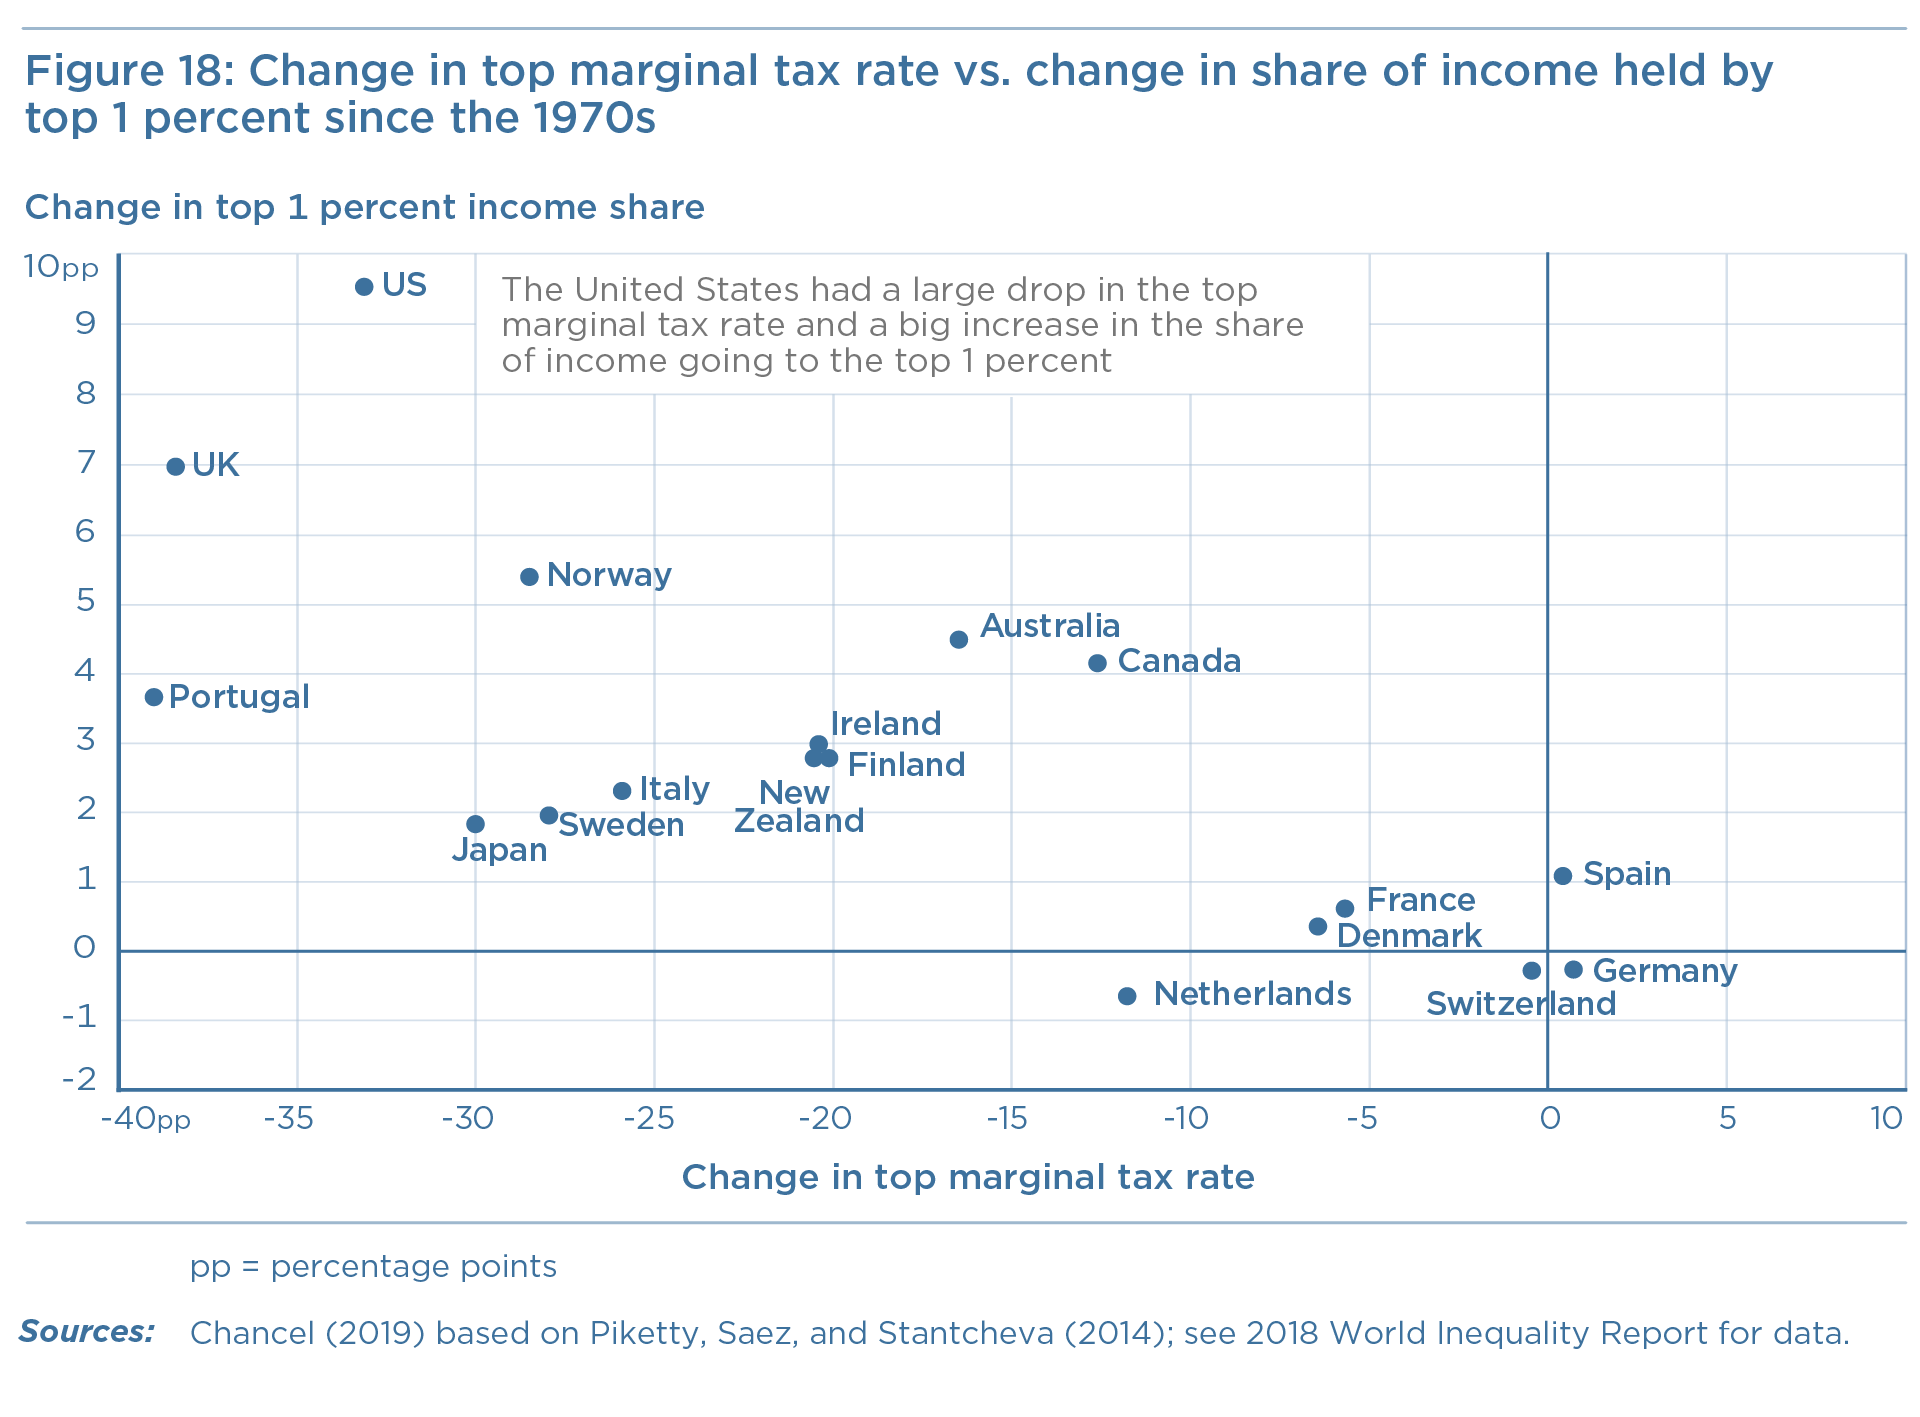 Figure 18: Change in top marginal tax rate vs. change in share of income held by top 1 percent since the 1970s